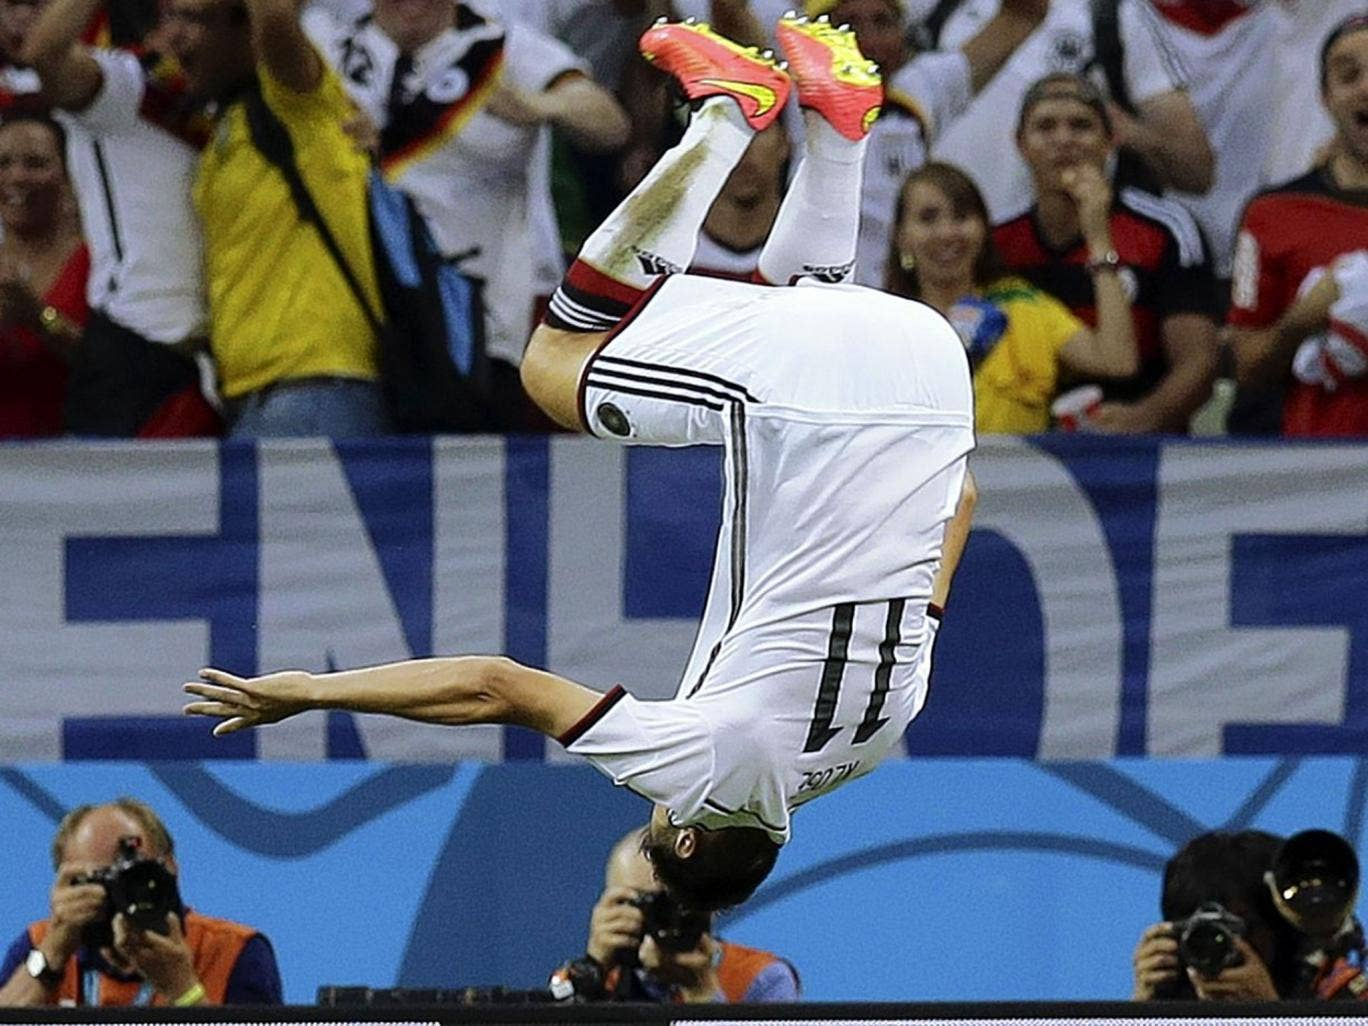 Vorsprung durch Klose: Germany's veteran striker Miroslav Klose does a flying somersault to celebrate his equaliser